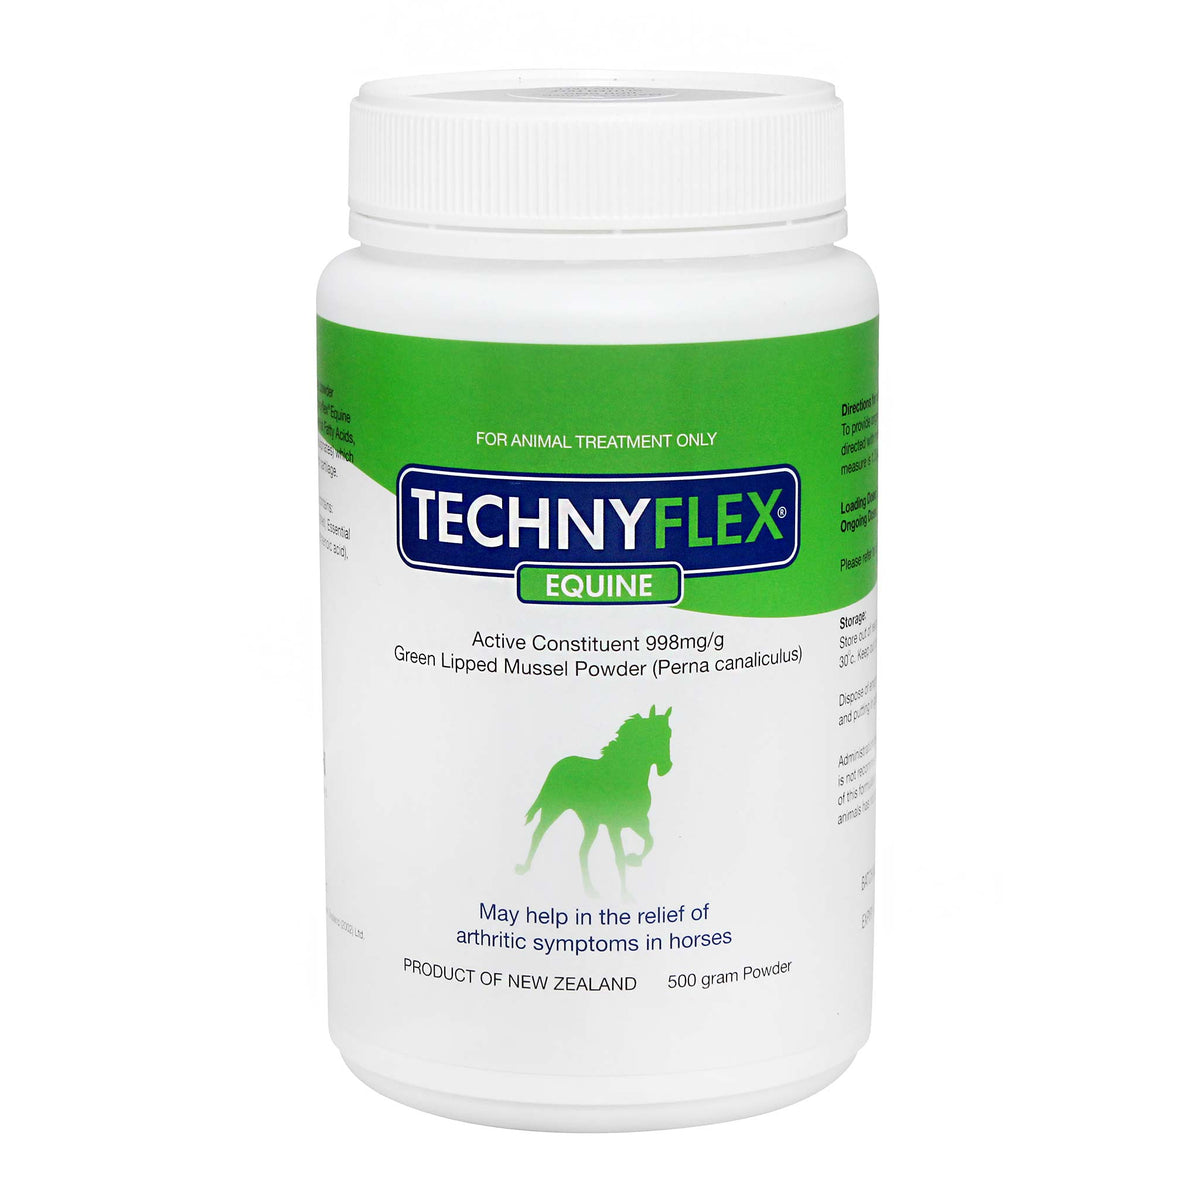 Technyflex Equine Natural Anti-inflammatory Powder for Horses